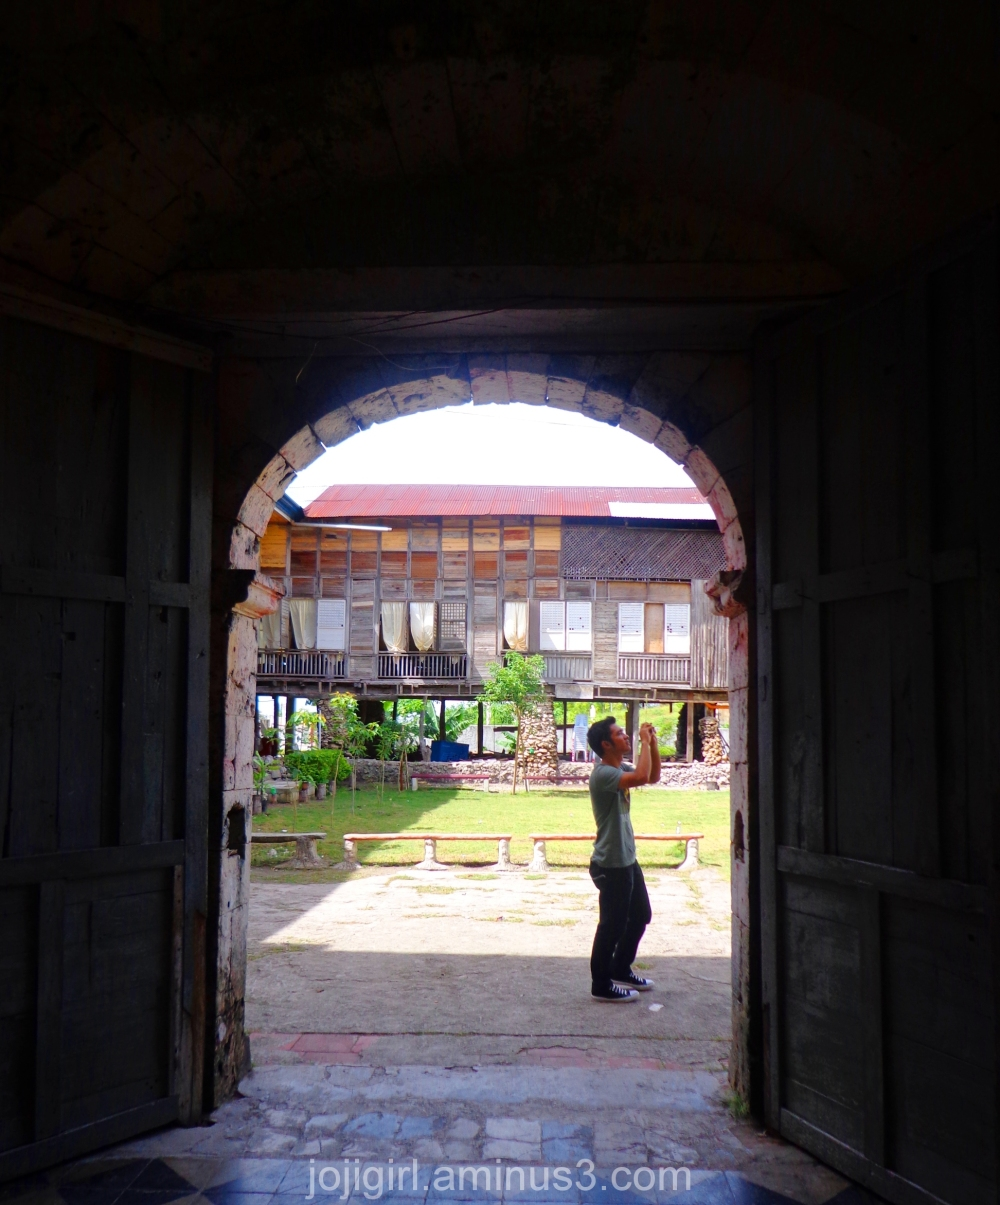 From Inside